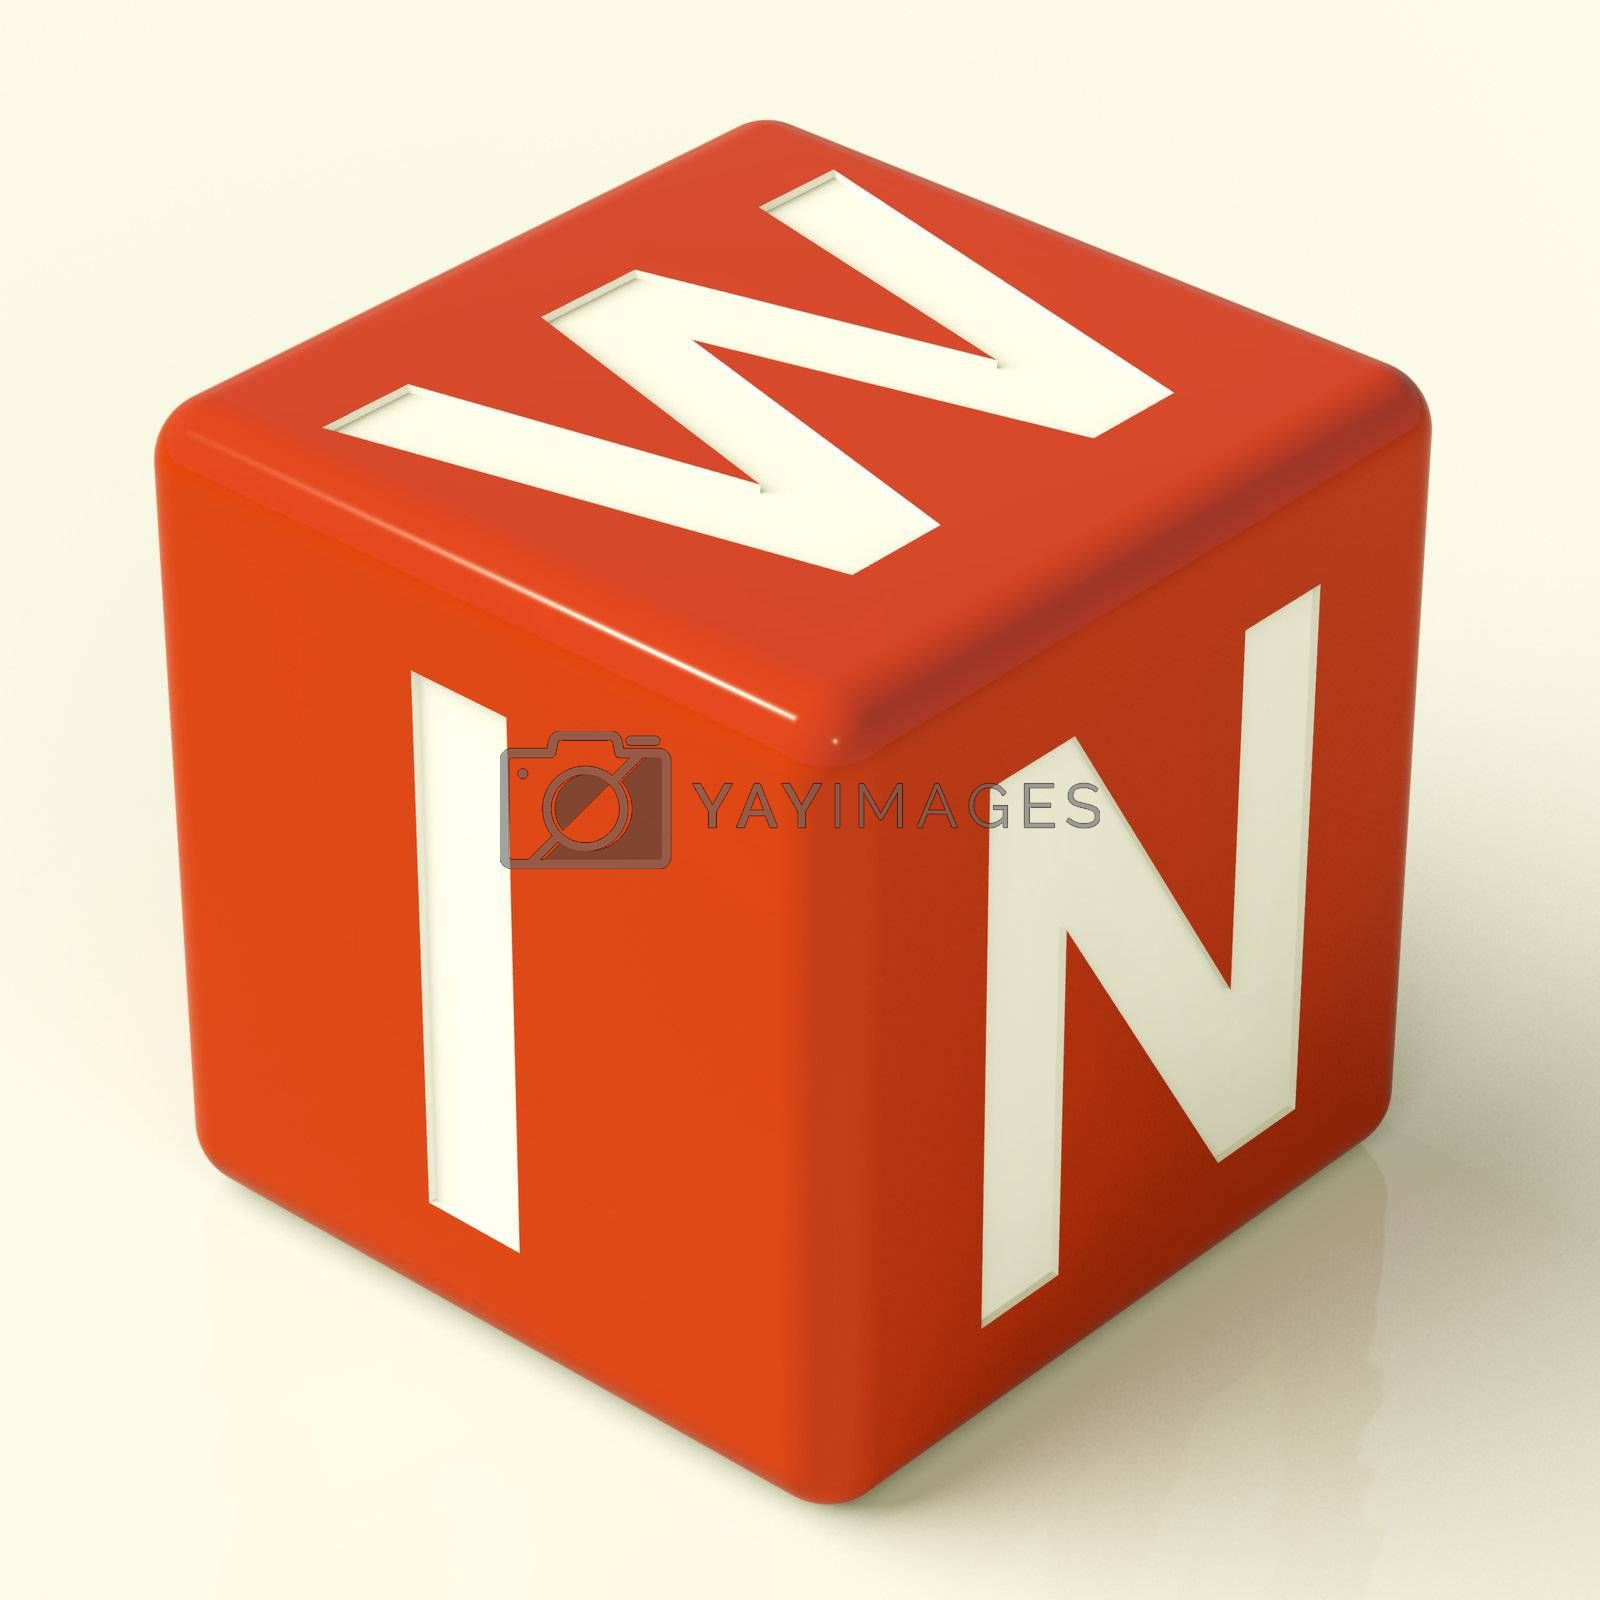 Win Red Dice Representing Triumph And Victory